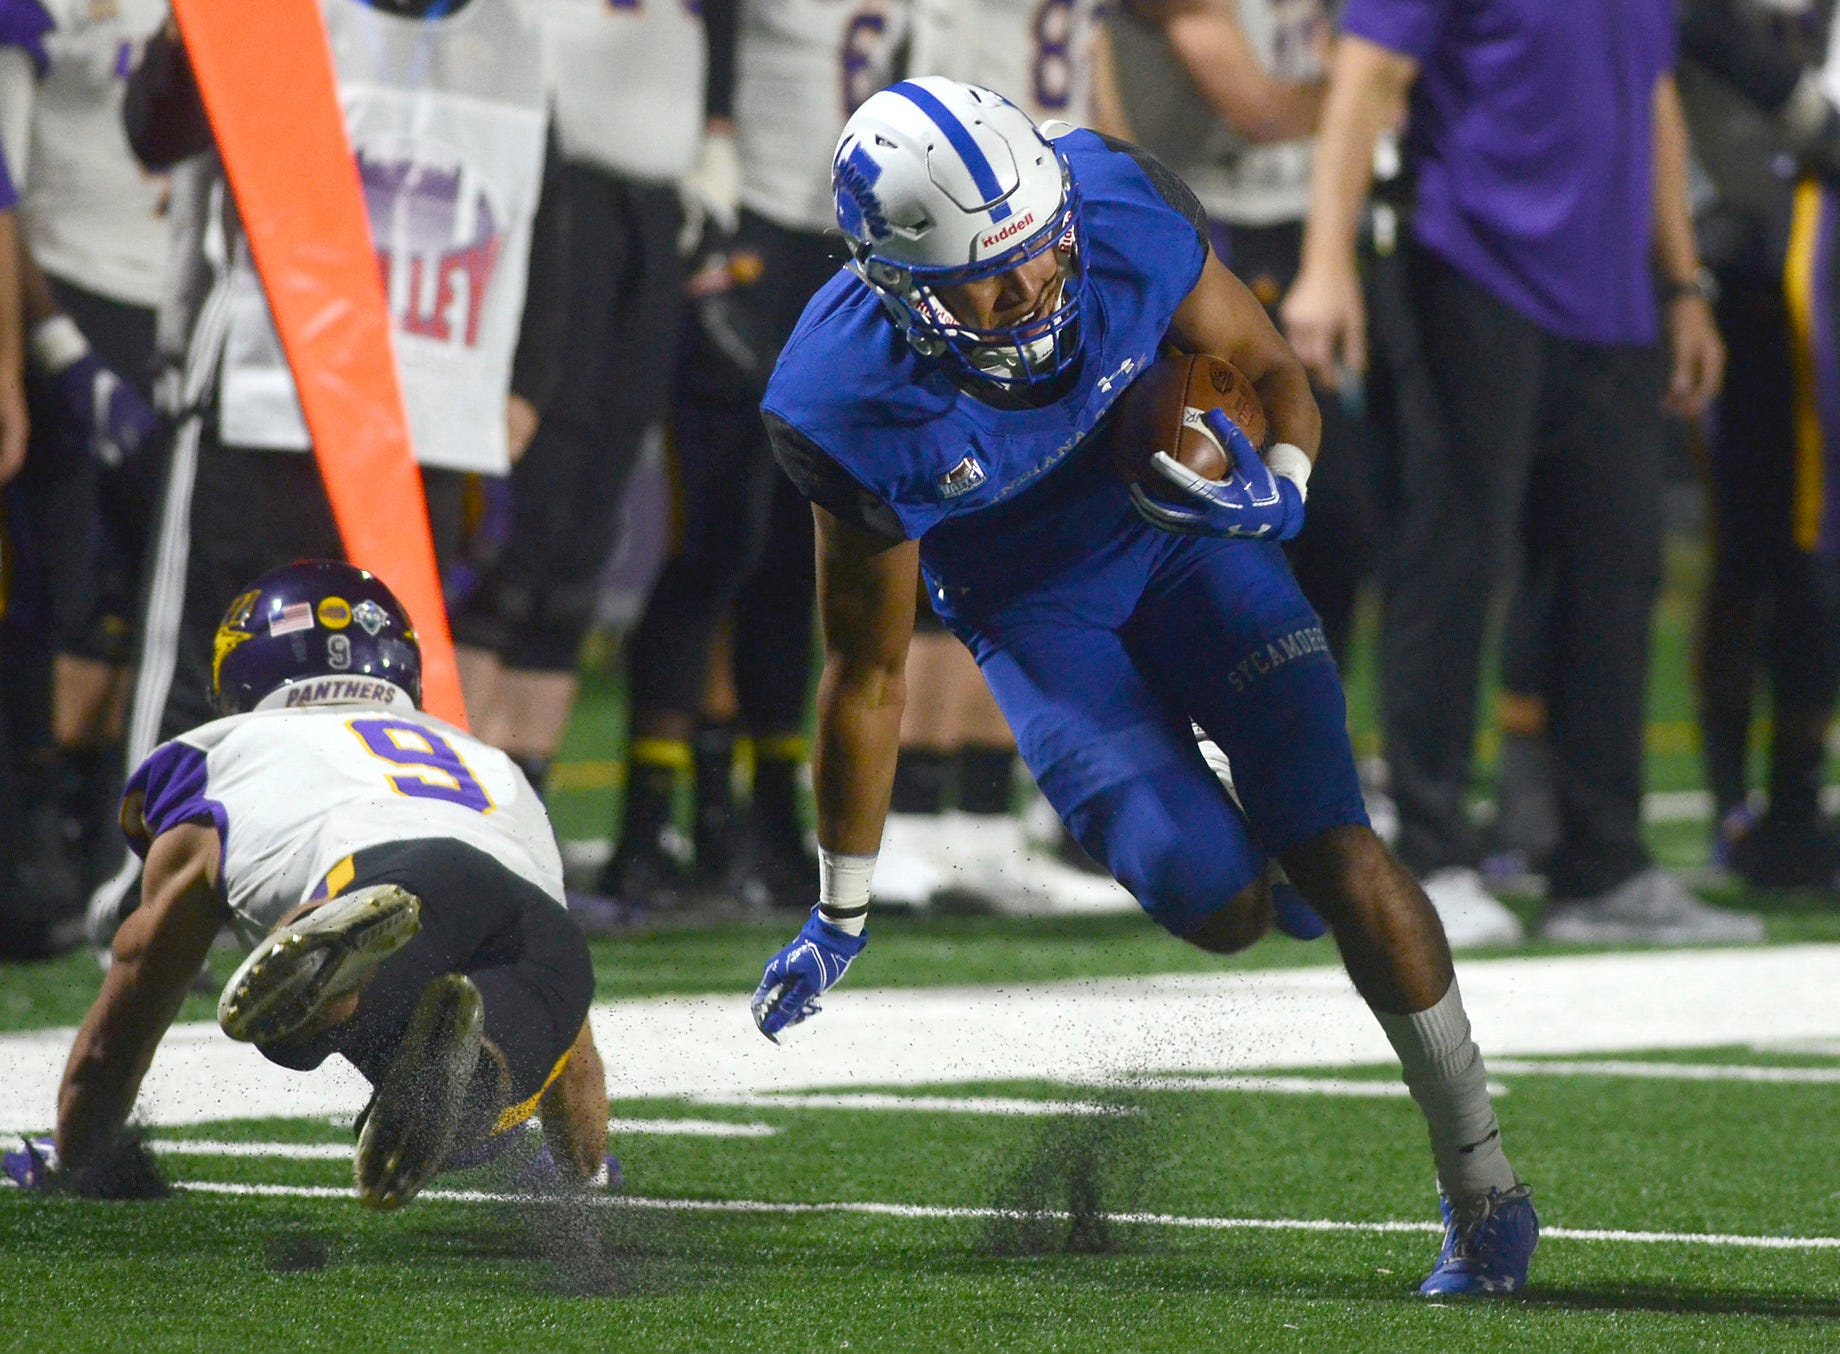 Indiana State wide receiver Dante Hendrix scrambles for yardage after he avoided a tackle by Northern Iowa's Xavior Williams during an NCAA college football game Thursday, Sept. 27, 2018, in Terre Haute, Ind.